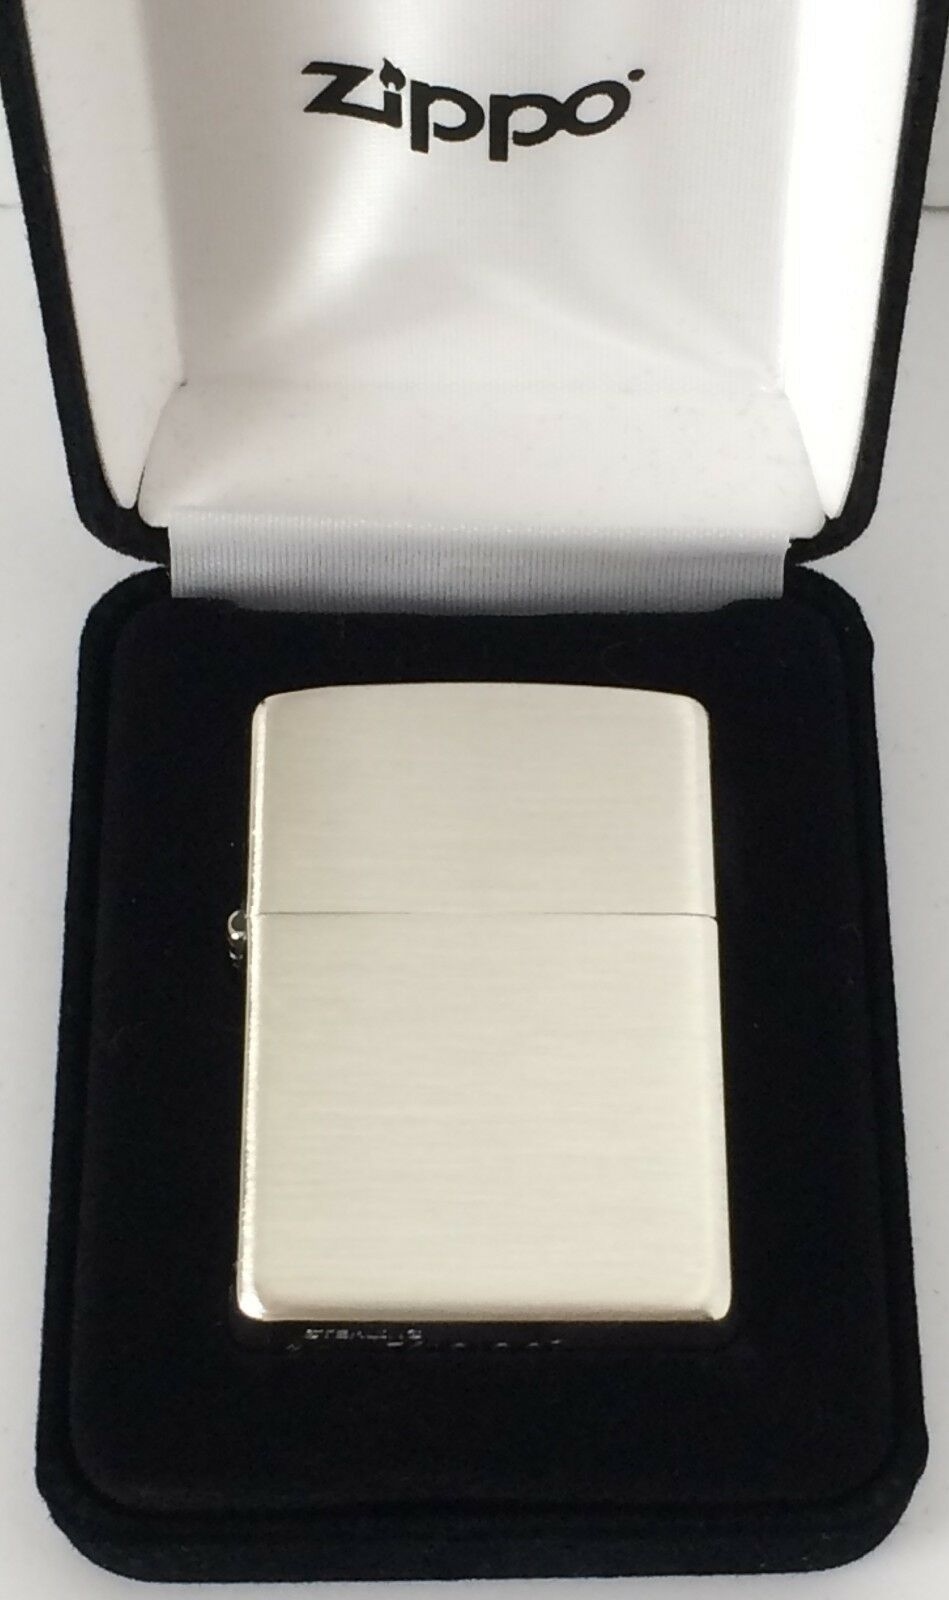 Zippo Sterling Silver Lighter With Brushed Finish, Item #13,